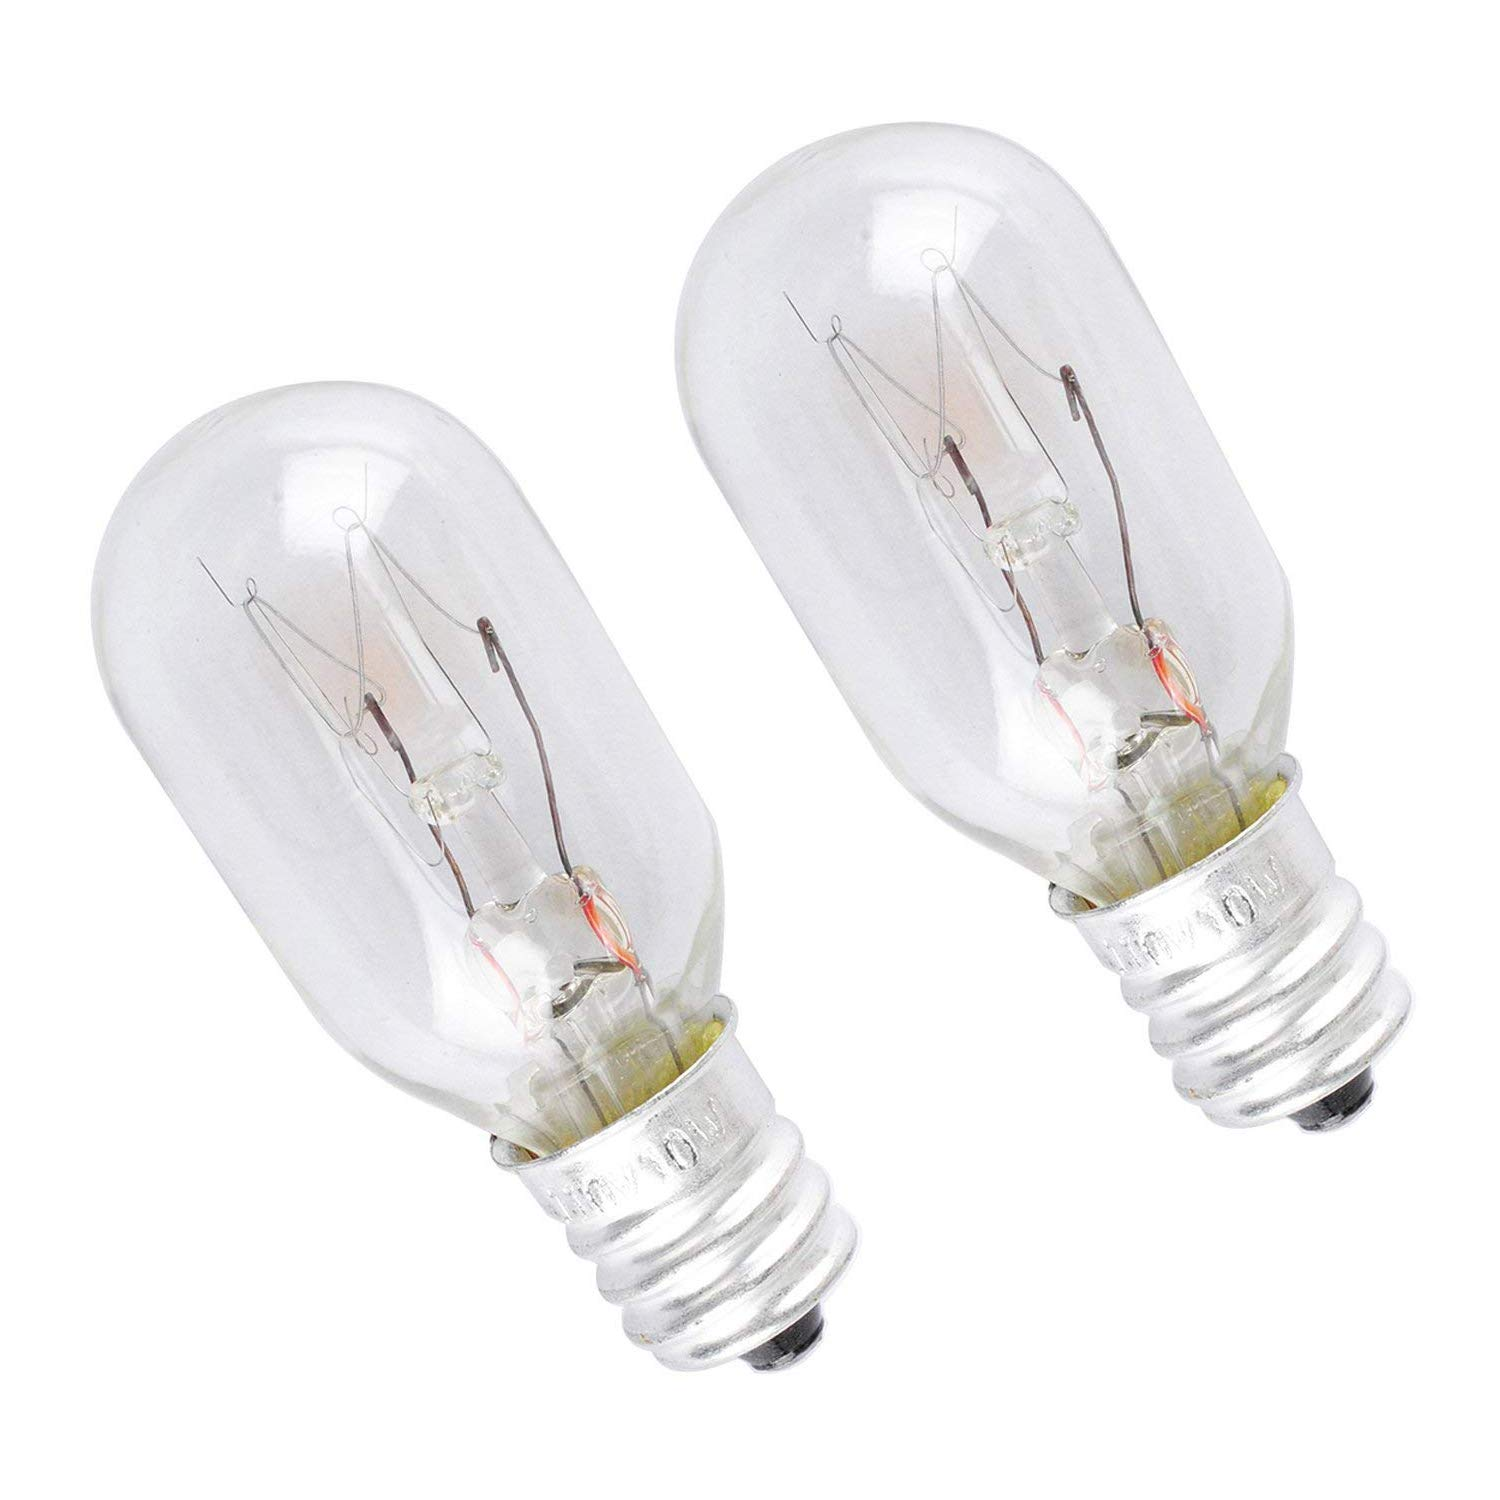 WE4M305 Dryer Light Bulb for General Electric/GE 10watt (2 pack)